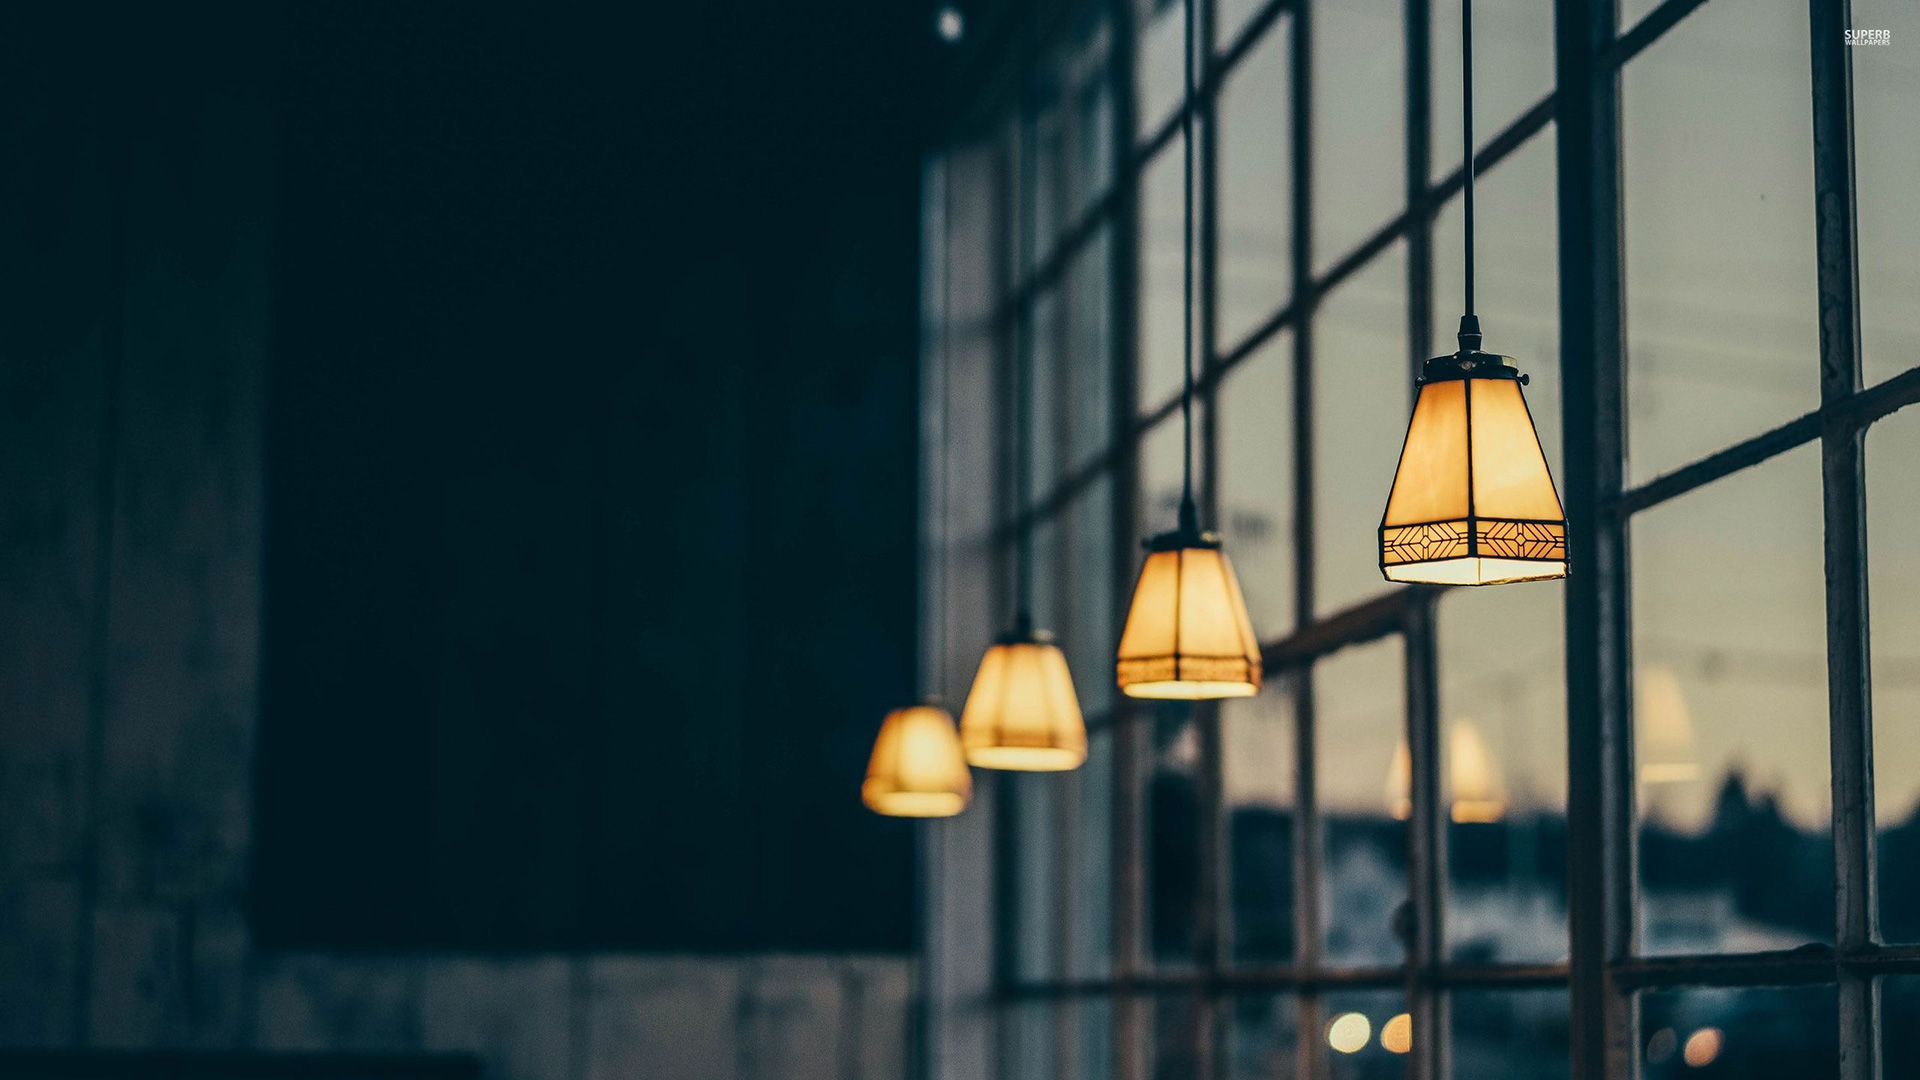 vintage-lamps-in-the-window-30095-2560×1440